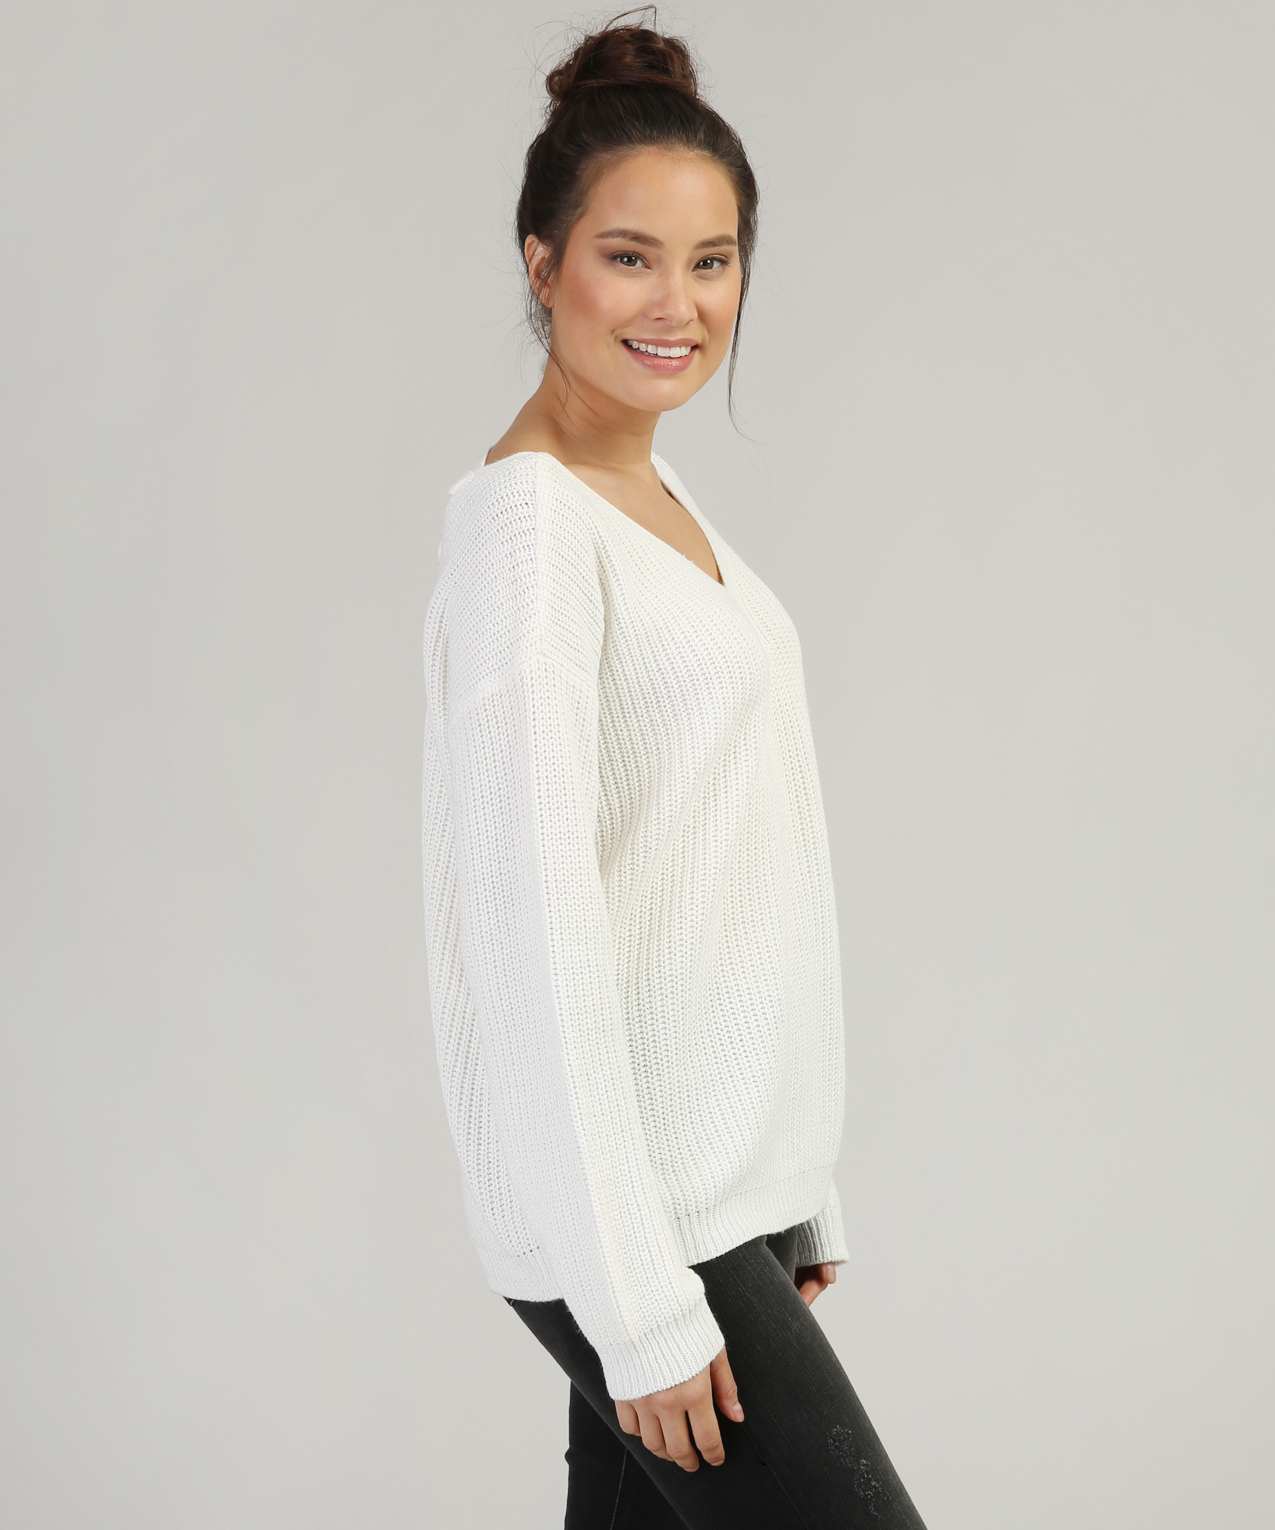 bfb46abdd8 ... lace up back sweater - wb